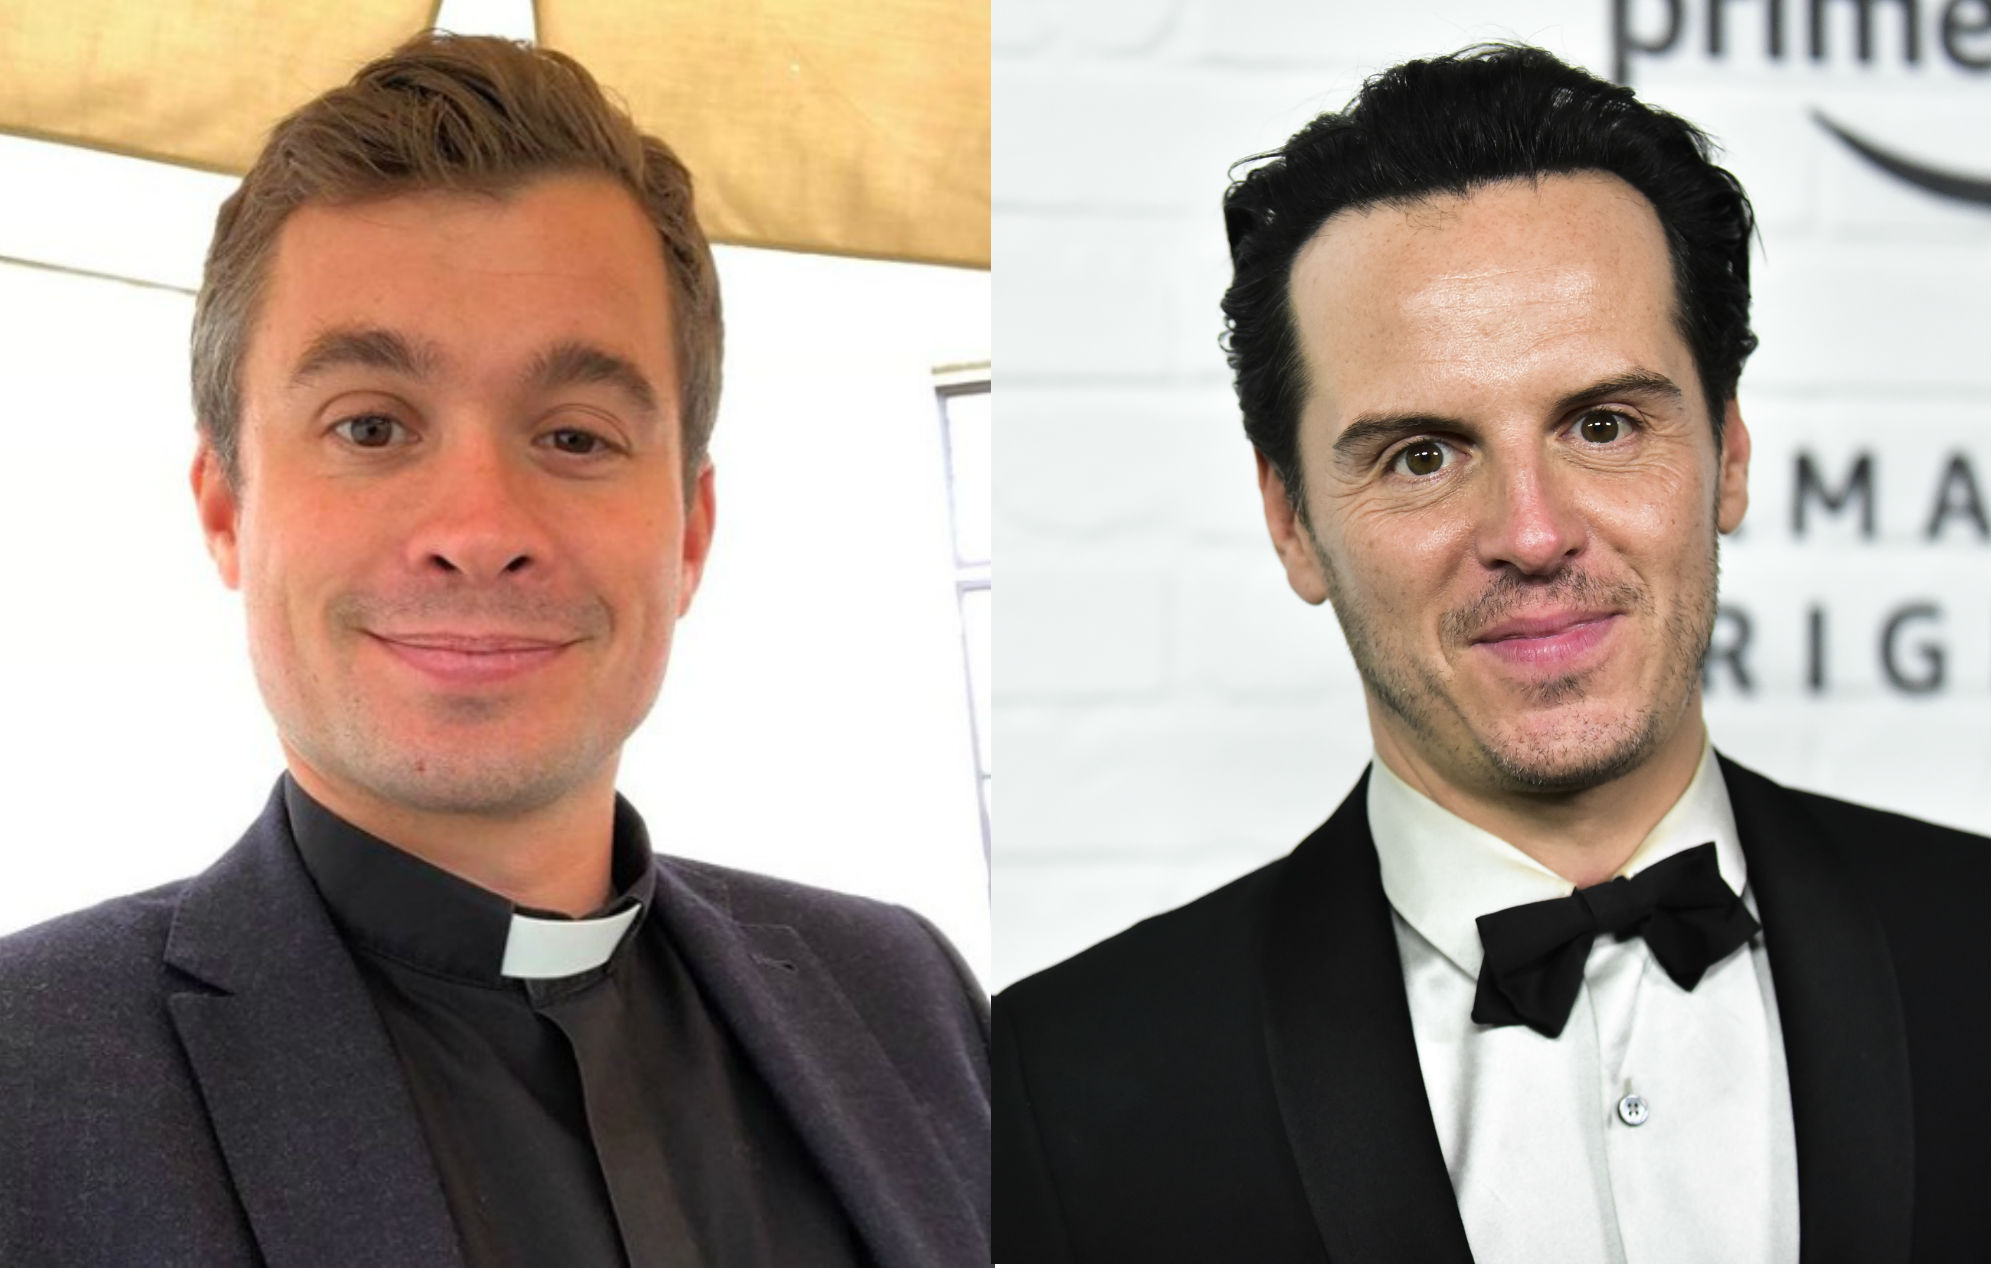 'Fleabag' Hot Priest look-a-like vicar tired of getting 'unsolicited nudes' from fans